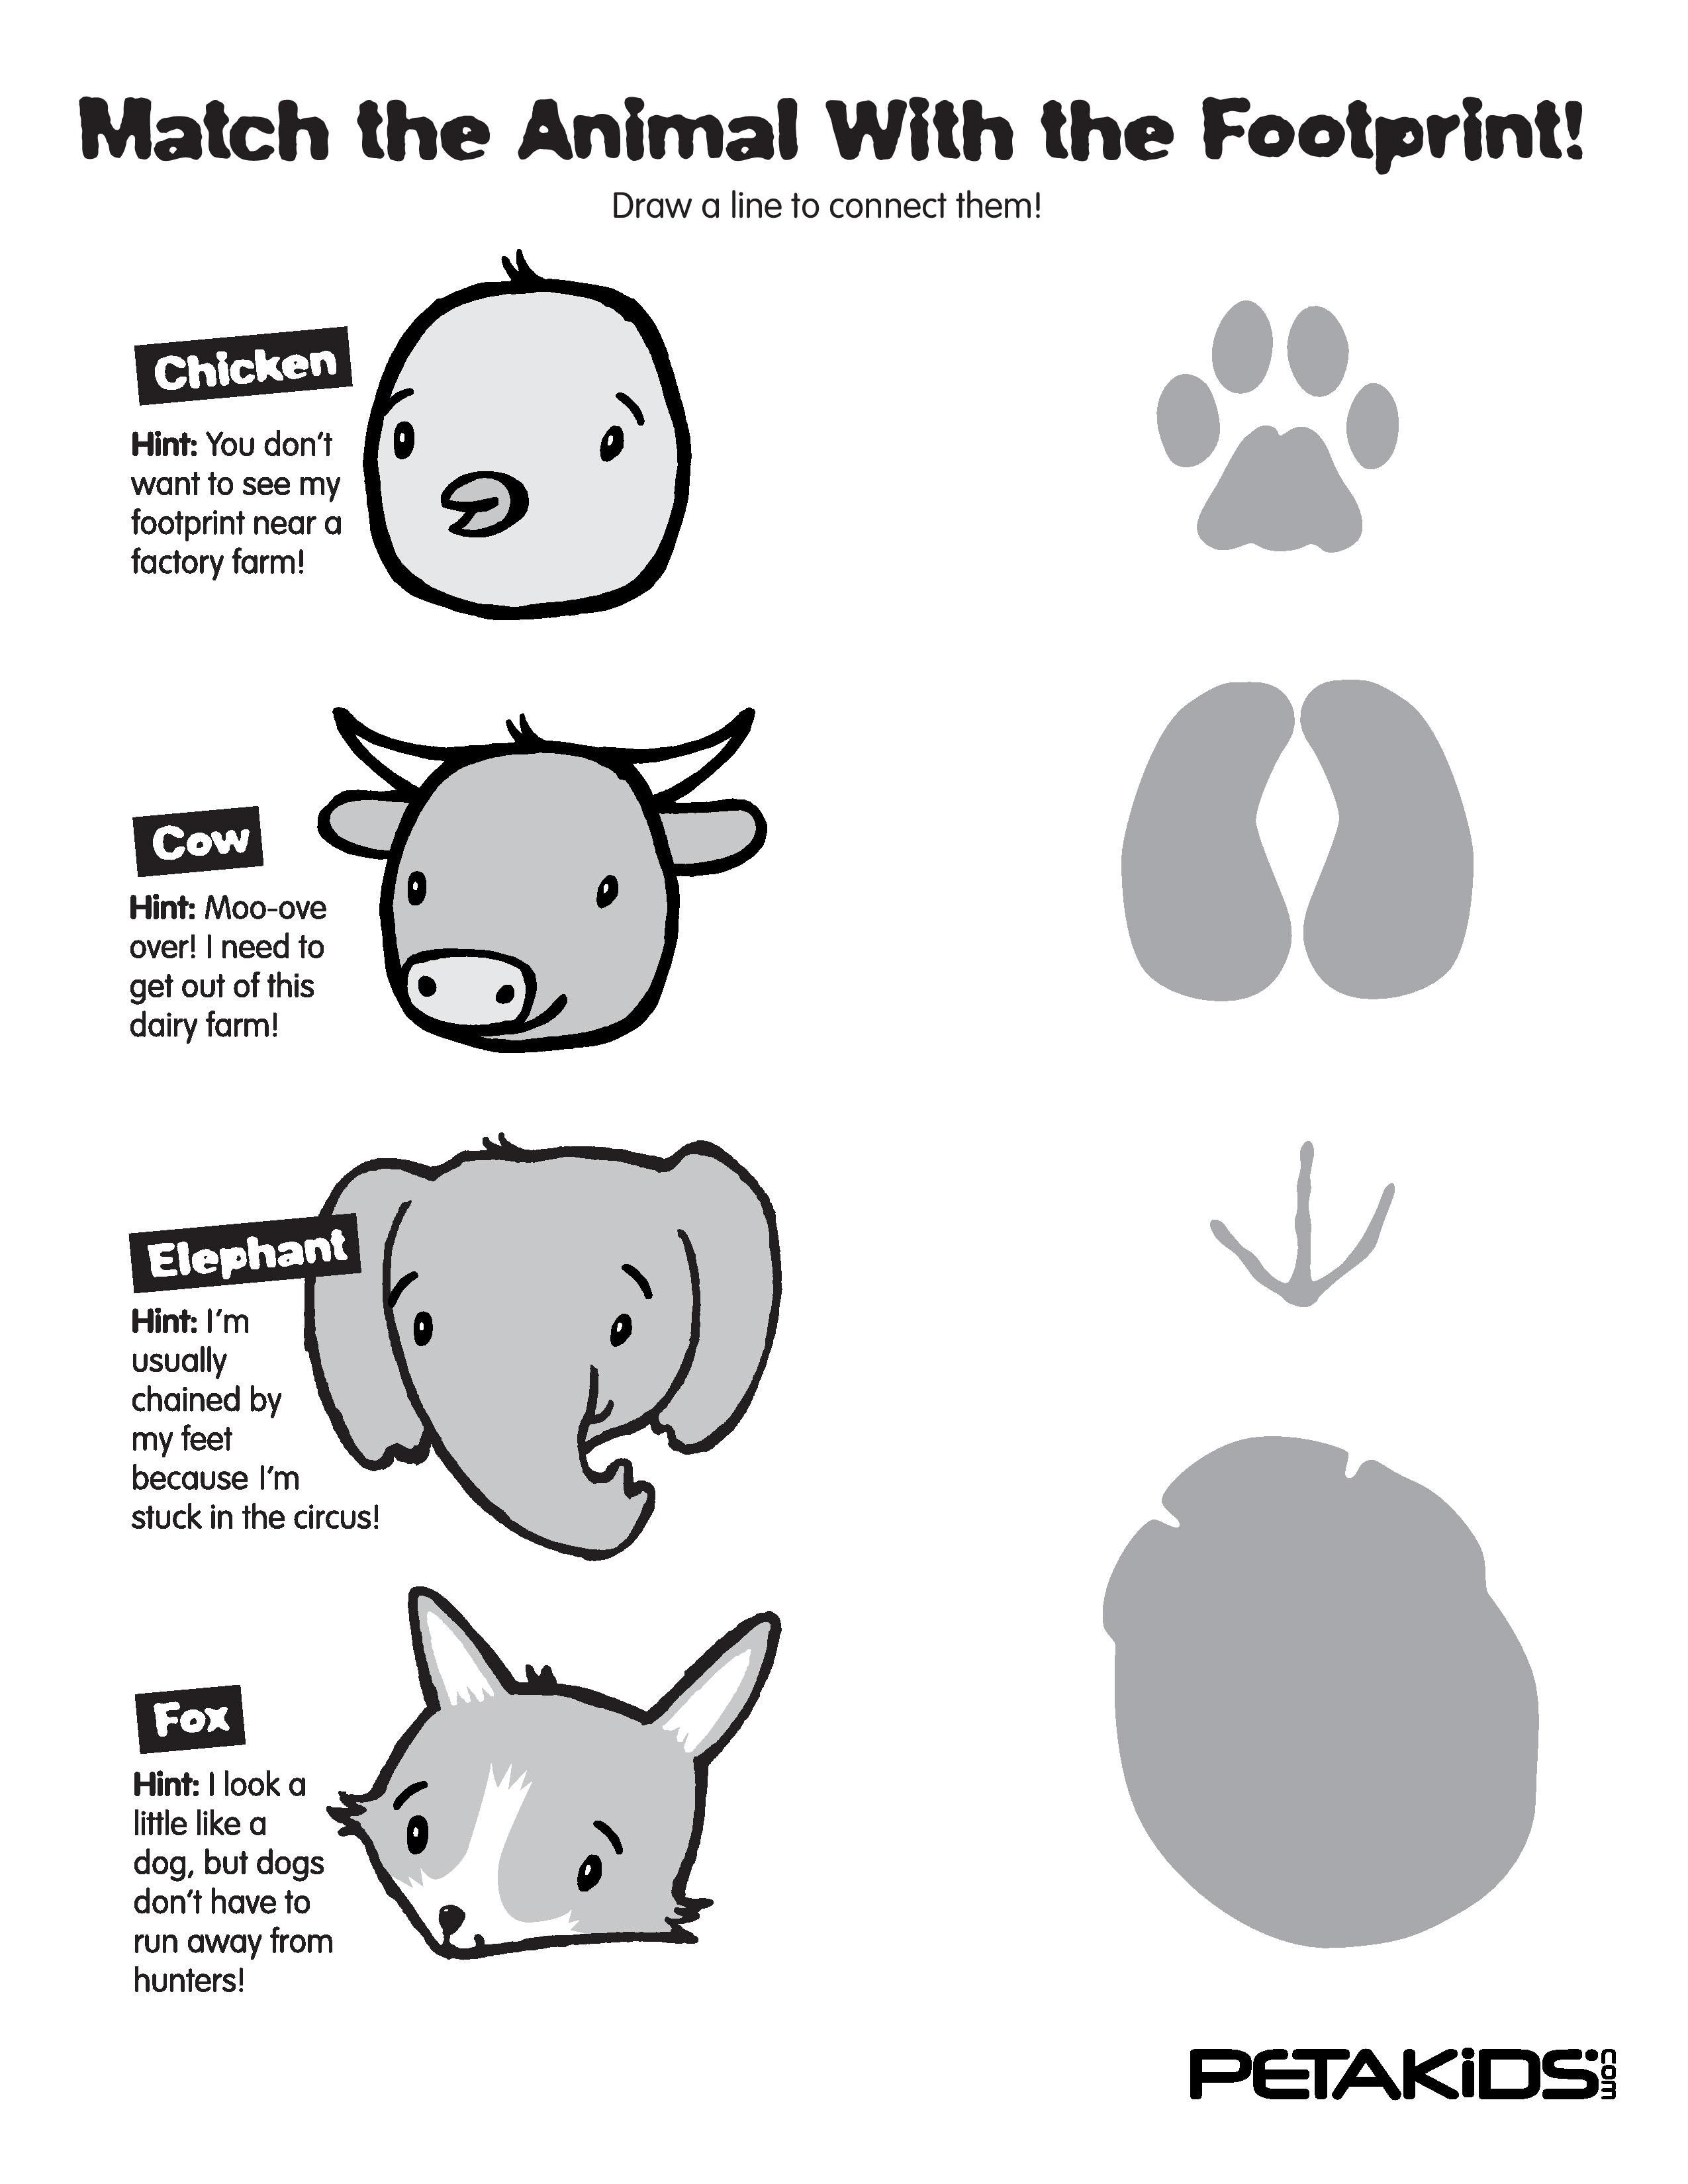 Animal Footprint Coloring Pages For 2019 Http Www Wallpaperartdesignhd Us Animal Footprint Colorin Animal Footprints Zoo Animal Coloring Pages Coloring Pages [ 3300 x 2550 Pixel ]